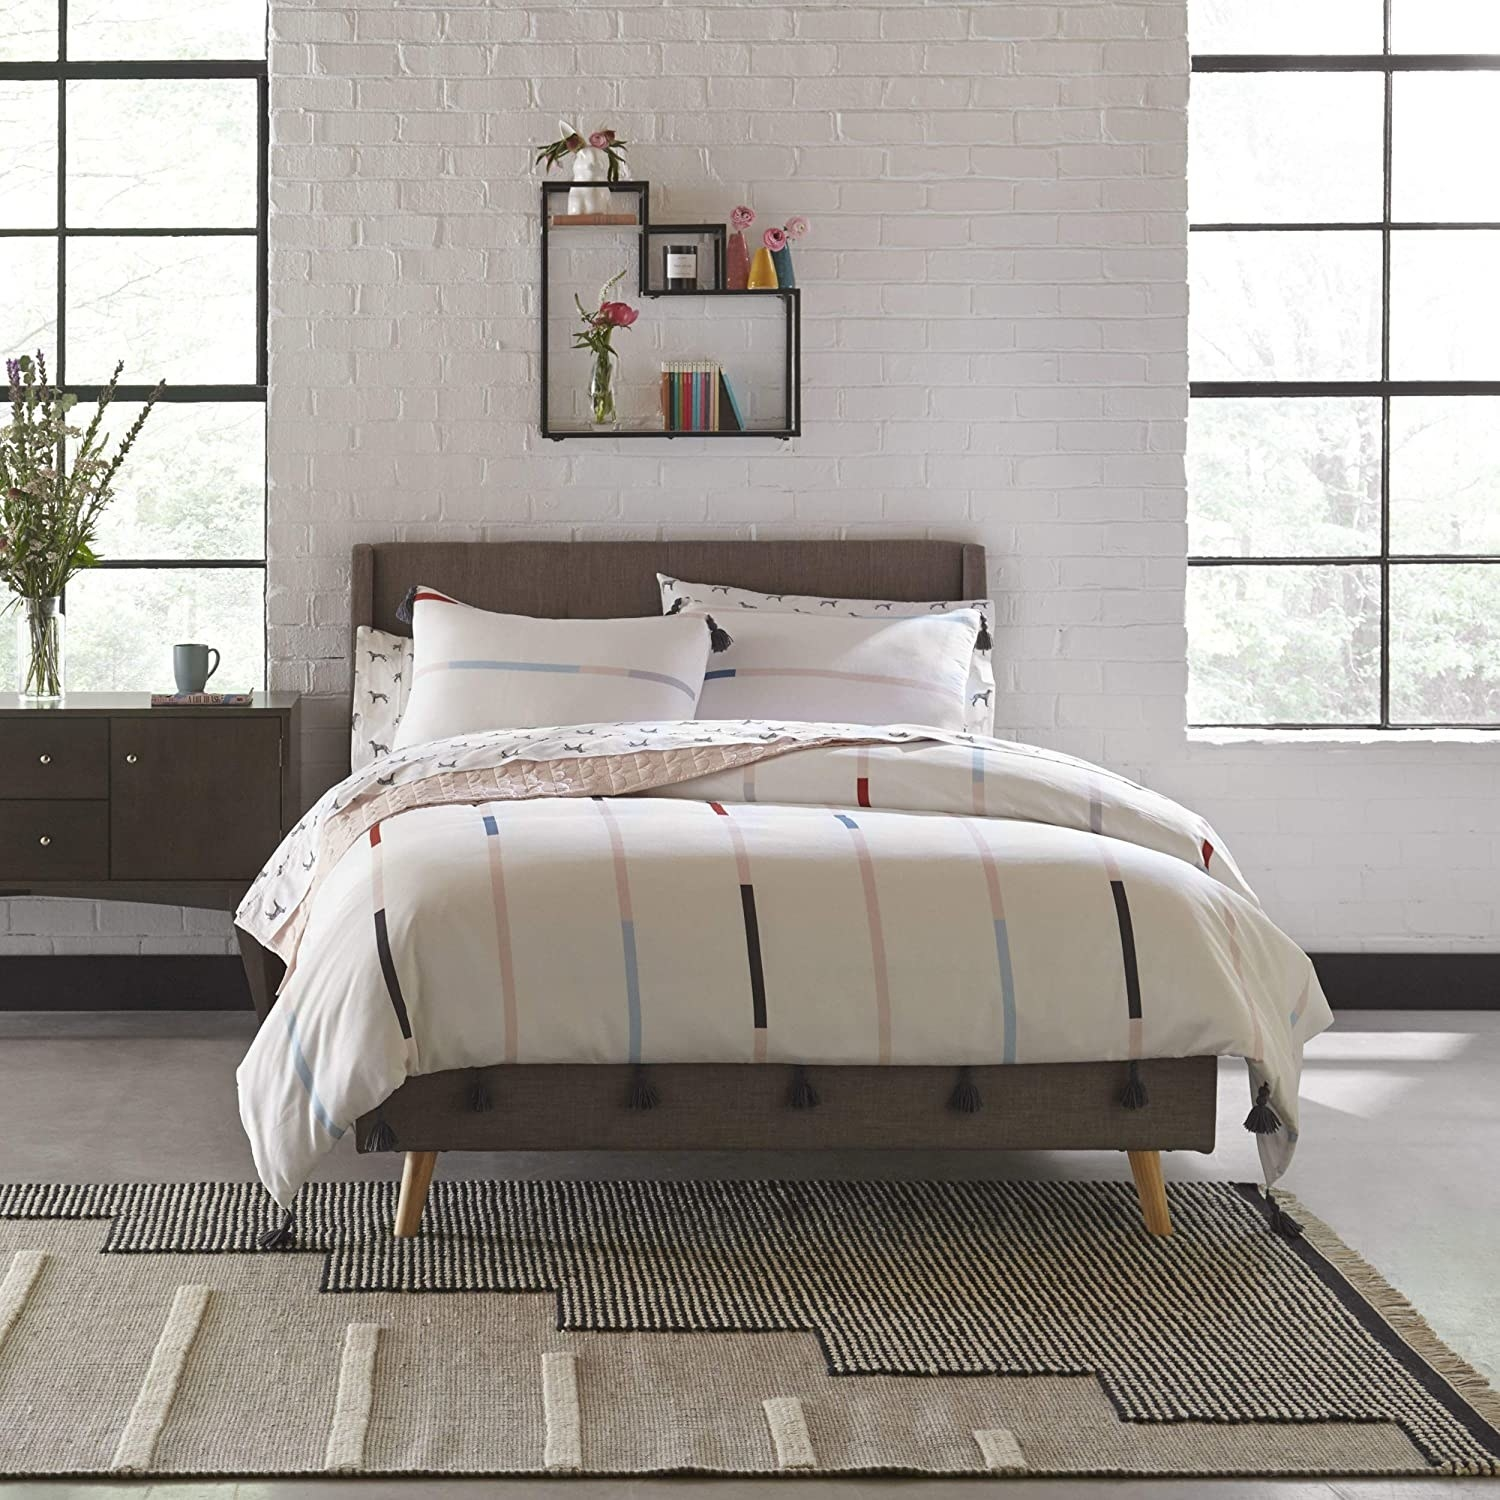 A cream bedding with multi-colored vertical stripes ending in black tassels